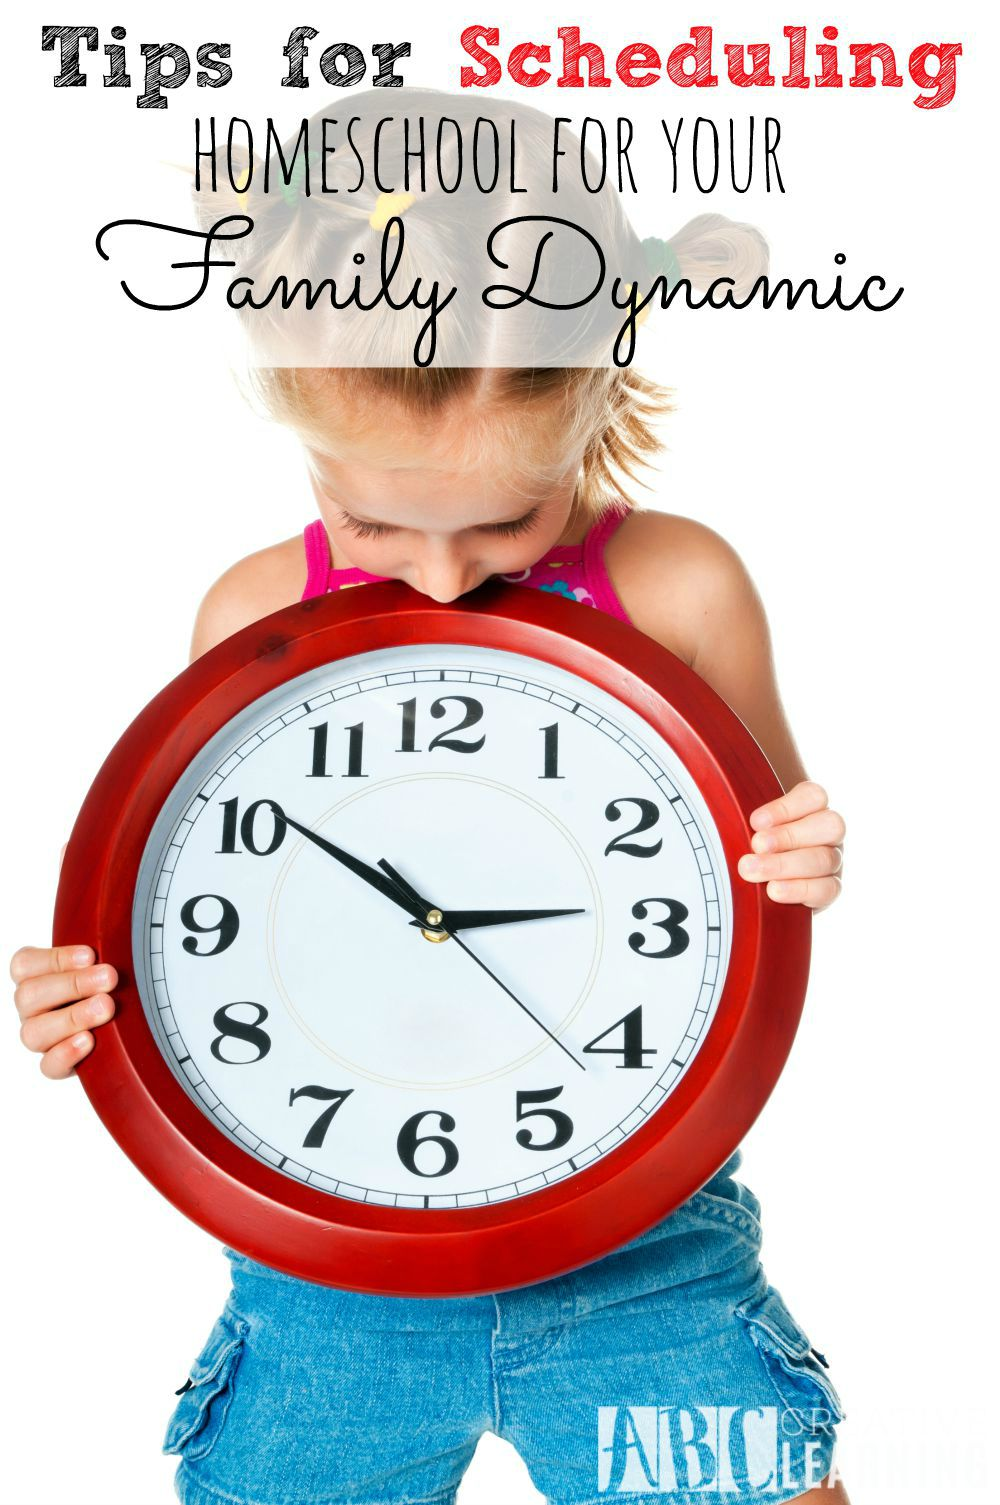 Tips for Scheduling Homeschool for your Family Dynamic